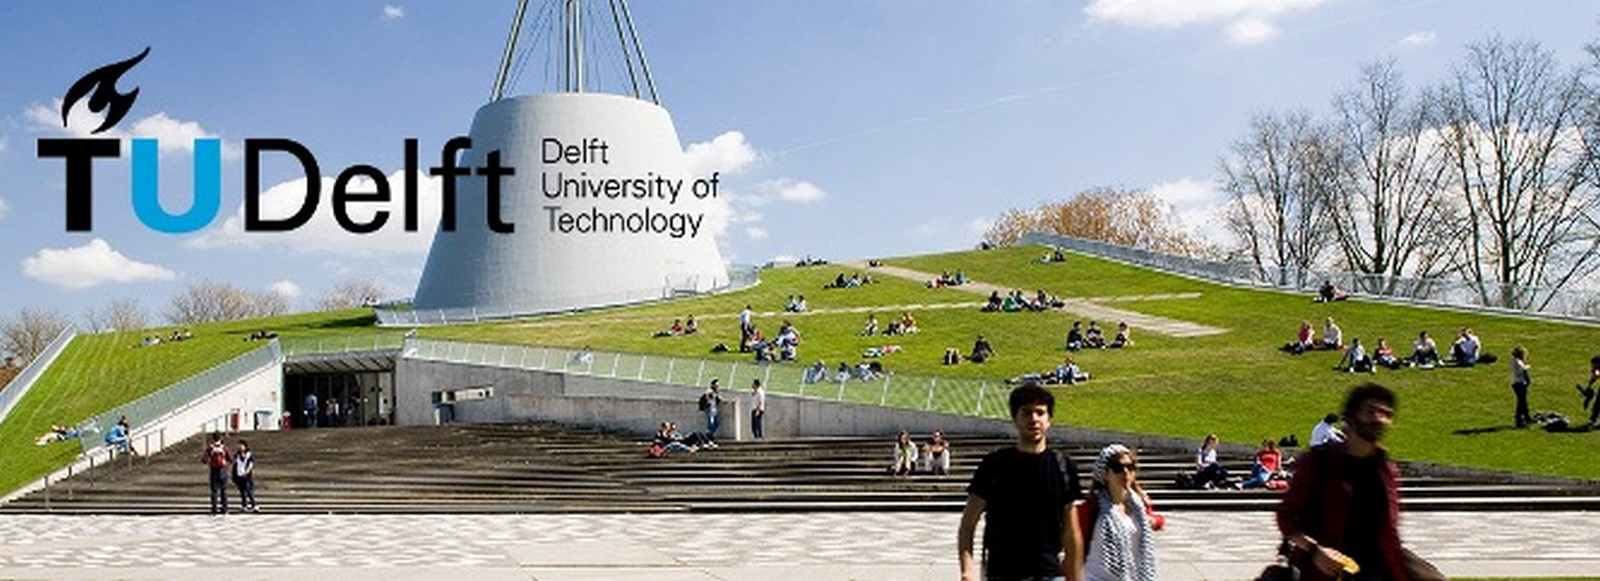 15 Best universities in the world for Masters in Urban Planning. - Sheet2